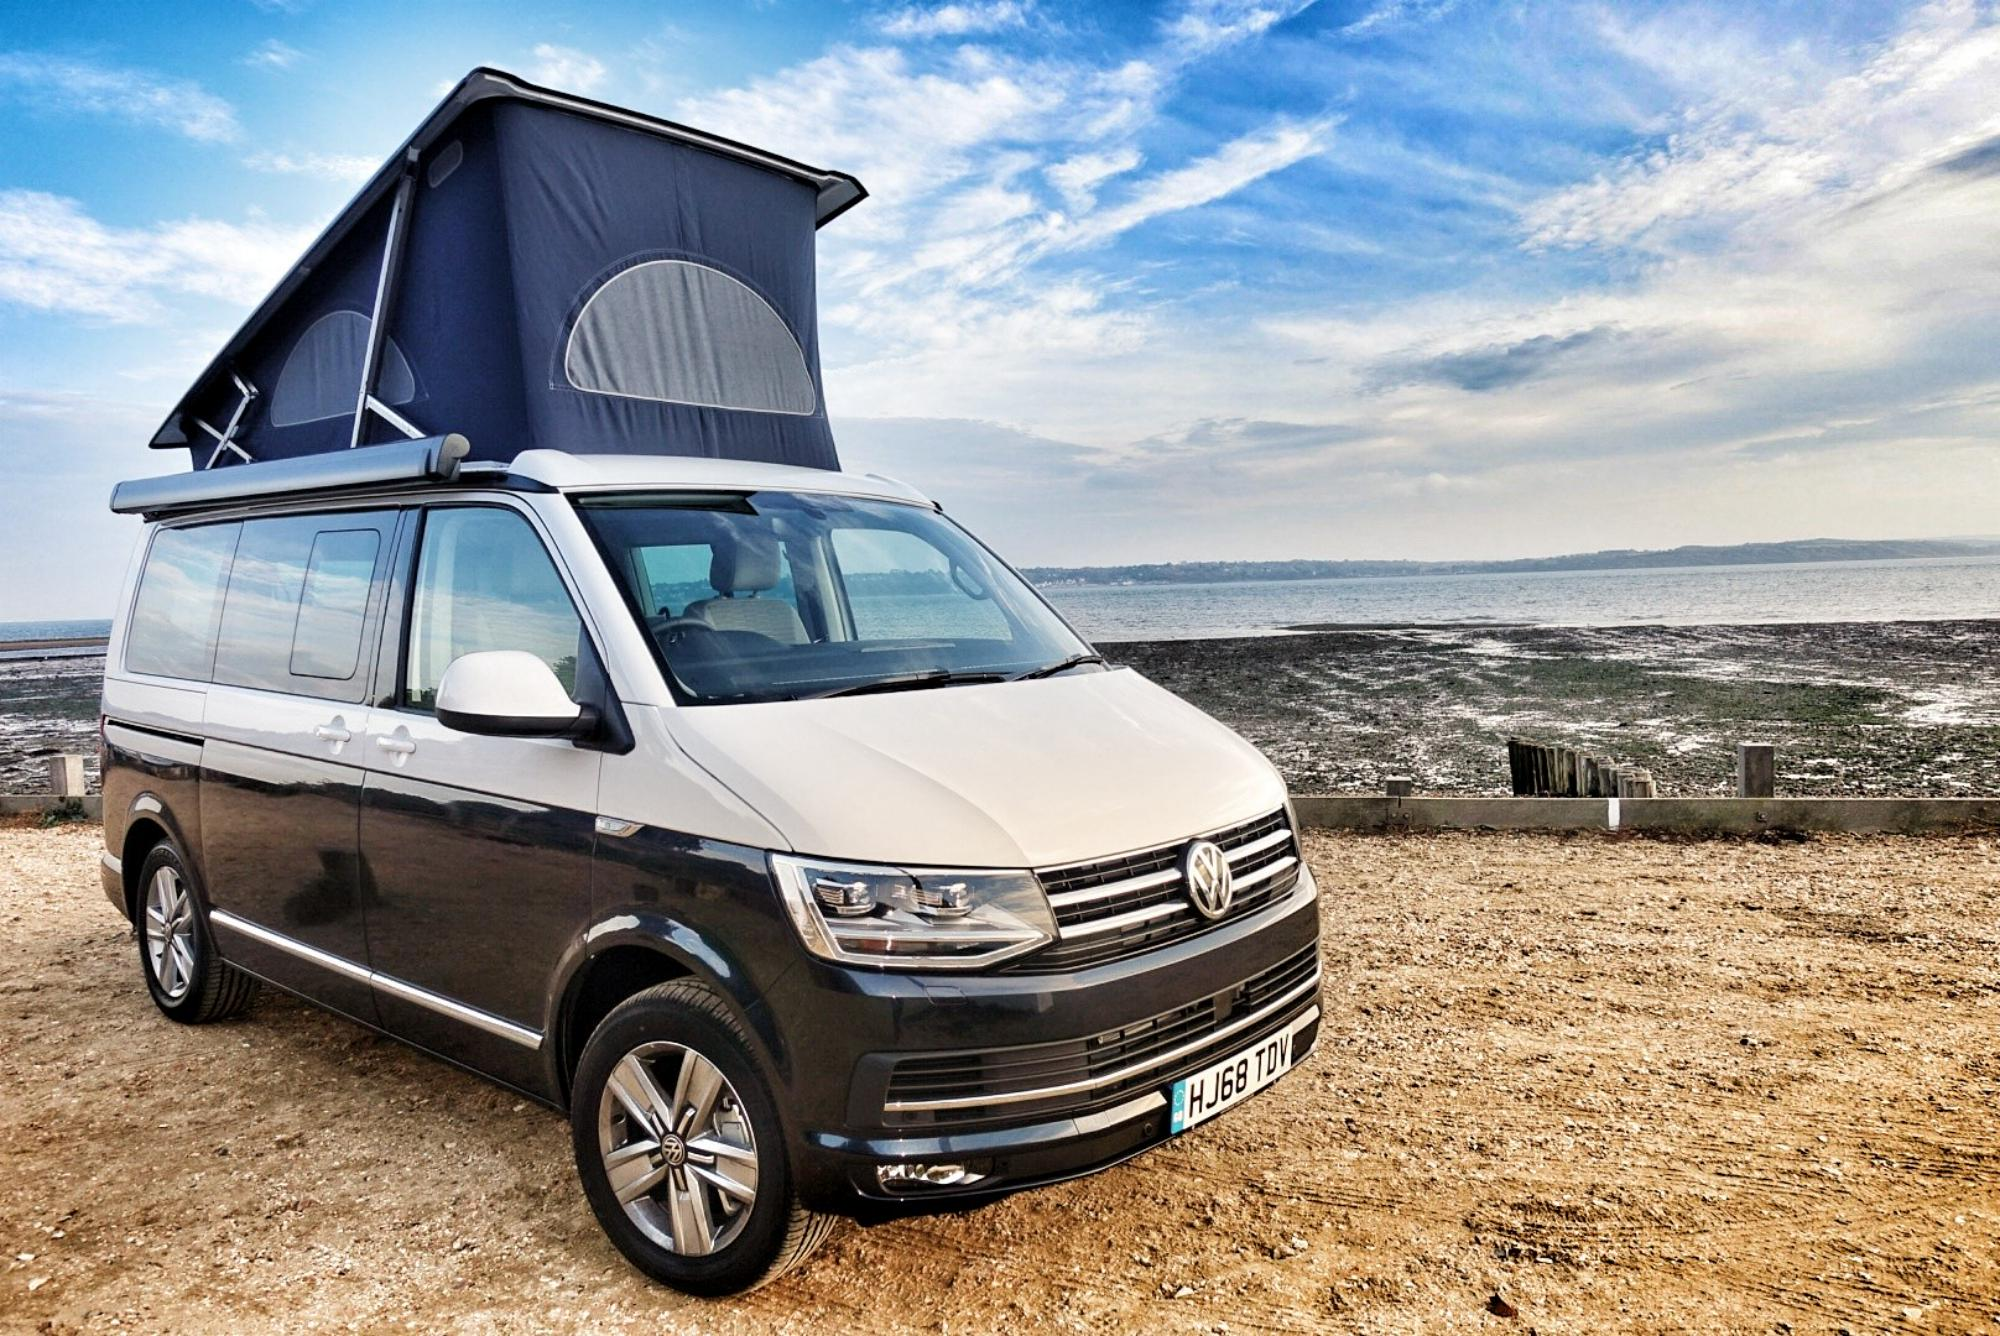 Campervan Hire in Hampshire | Motorhome Rental in Hampshire